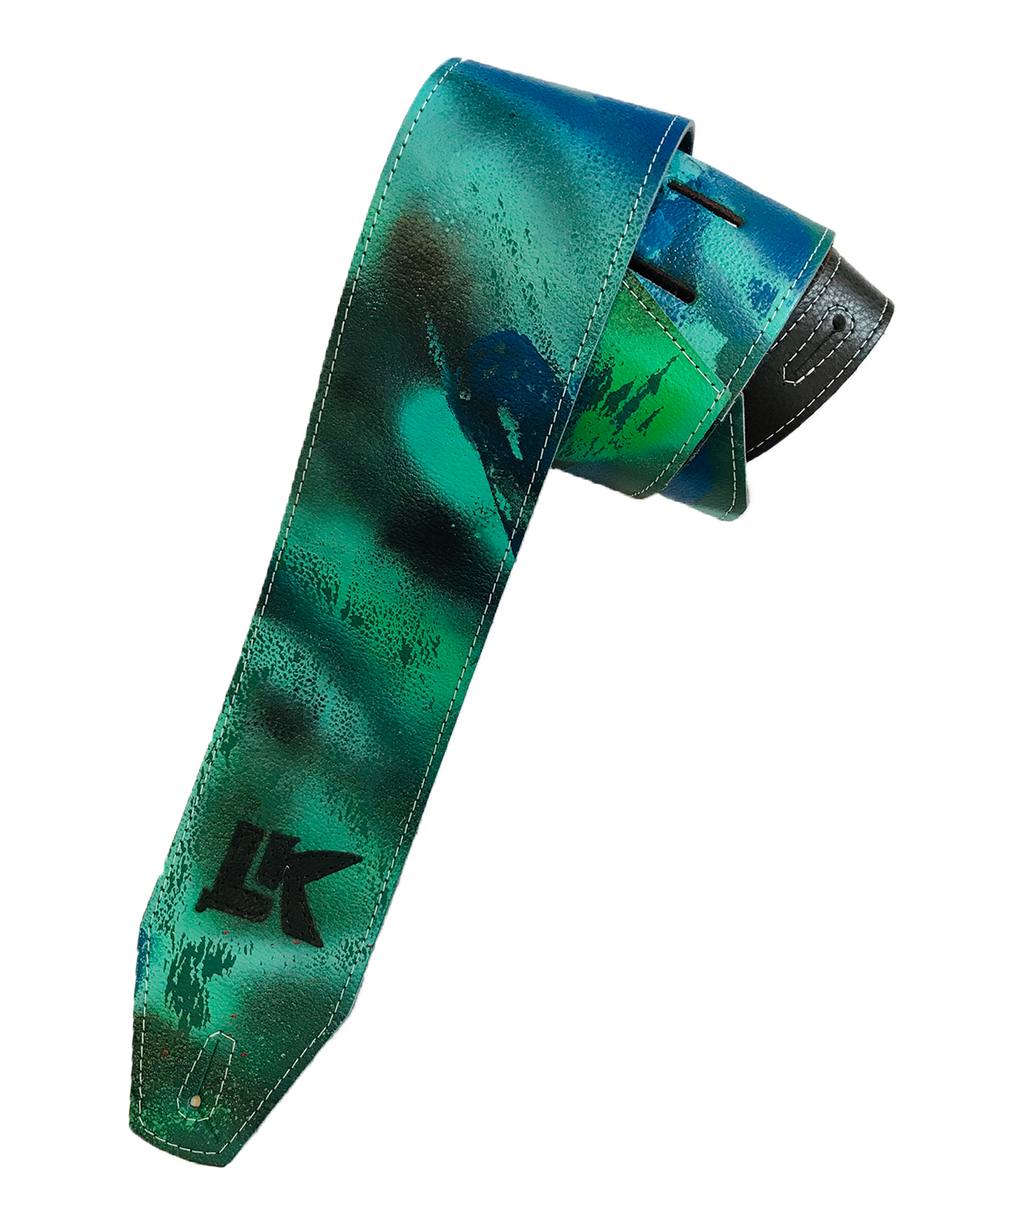 LK Green Blue Black Spray Paint Strap